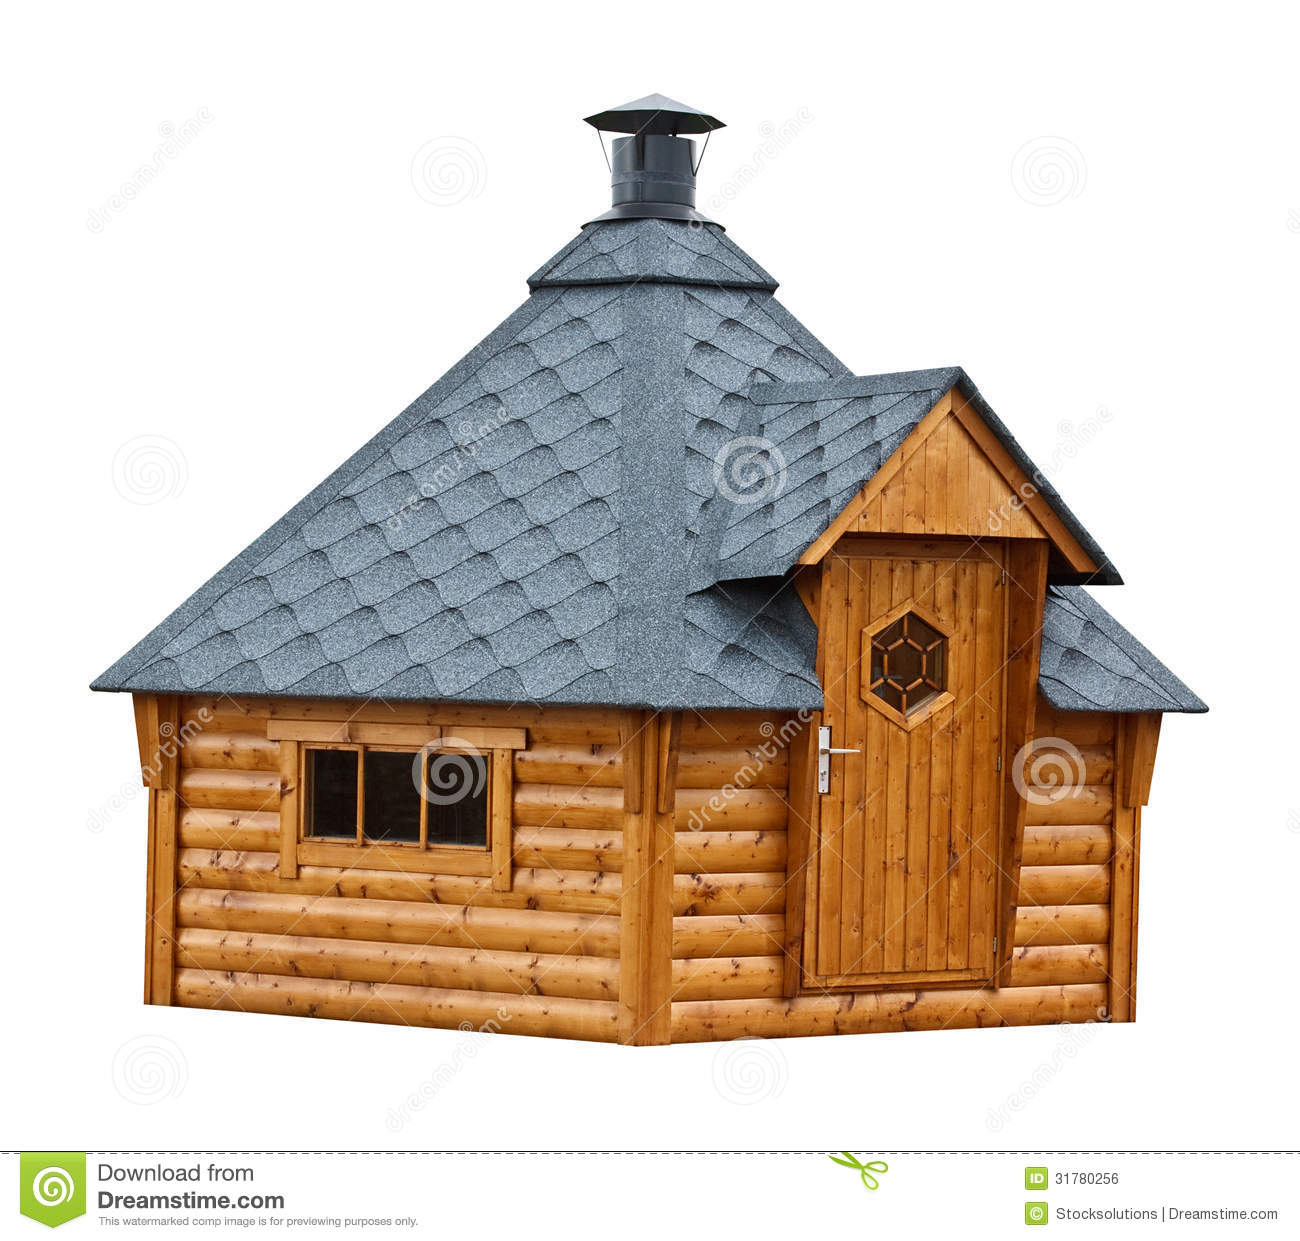 Timber Garden Sauna Building Royalty Free Stock Image ...